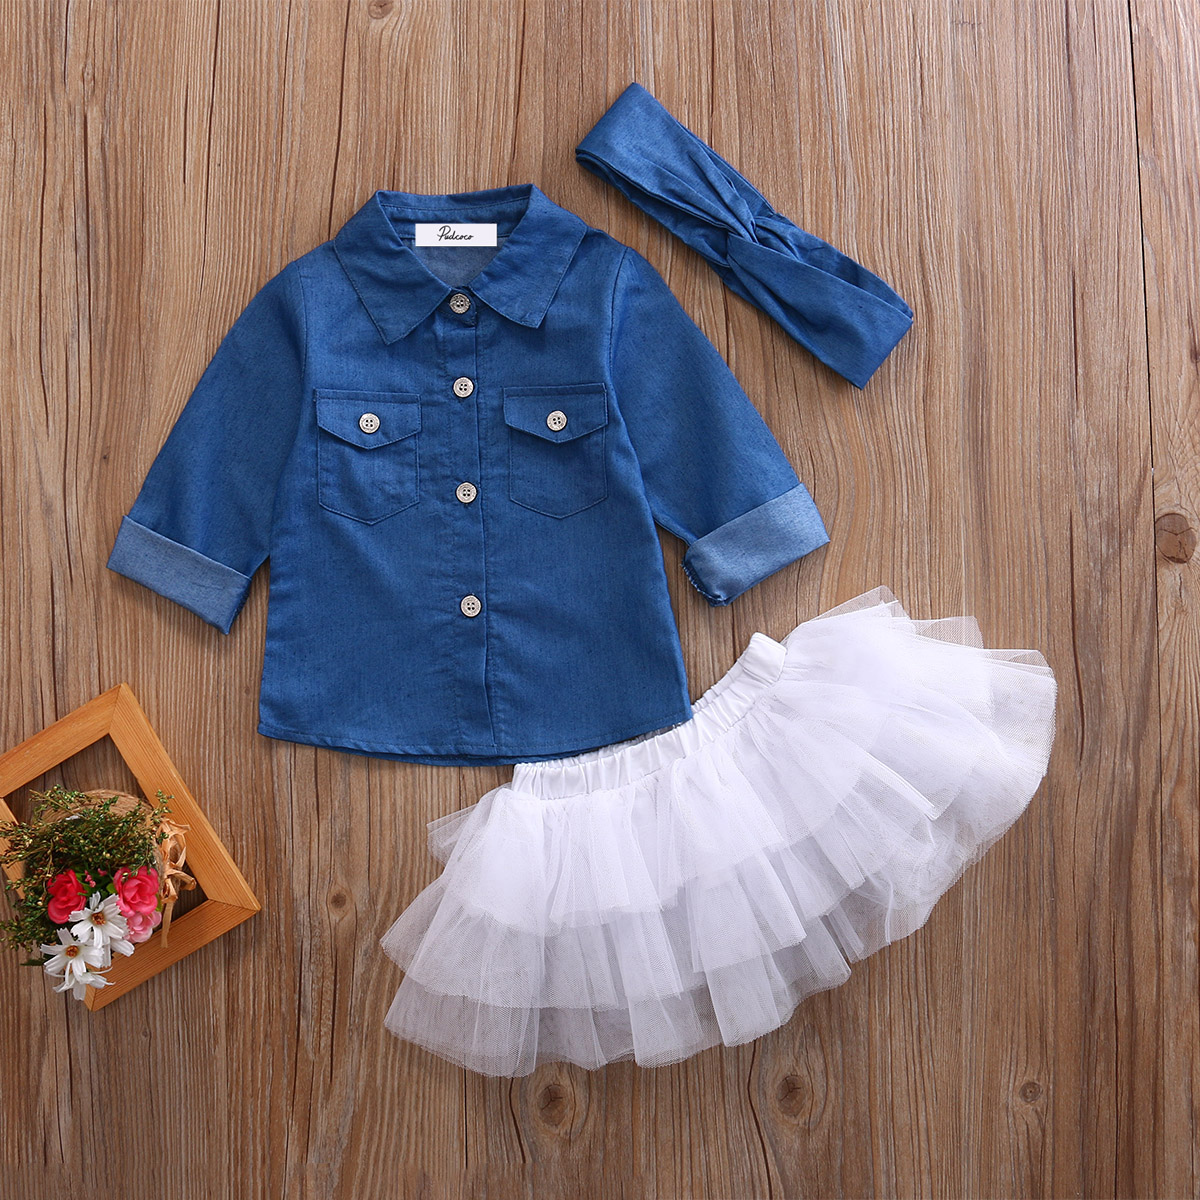 Kids Baby Girls Denim Tops T shirt+White Tutu Skirts+Headband 3pcs Outfits Clothes Set Summer Long Sleeve Children Clothing Sets fashion baby girl t shirt set cotton heart print shirt hole denim cropped trousers casual polka dot children clothing set